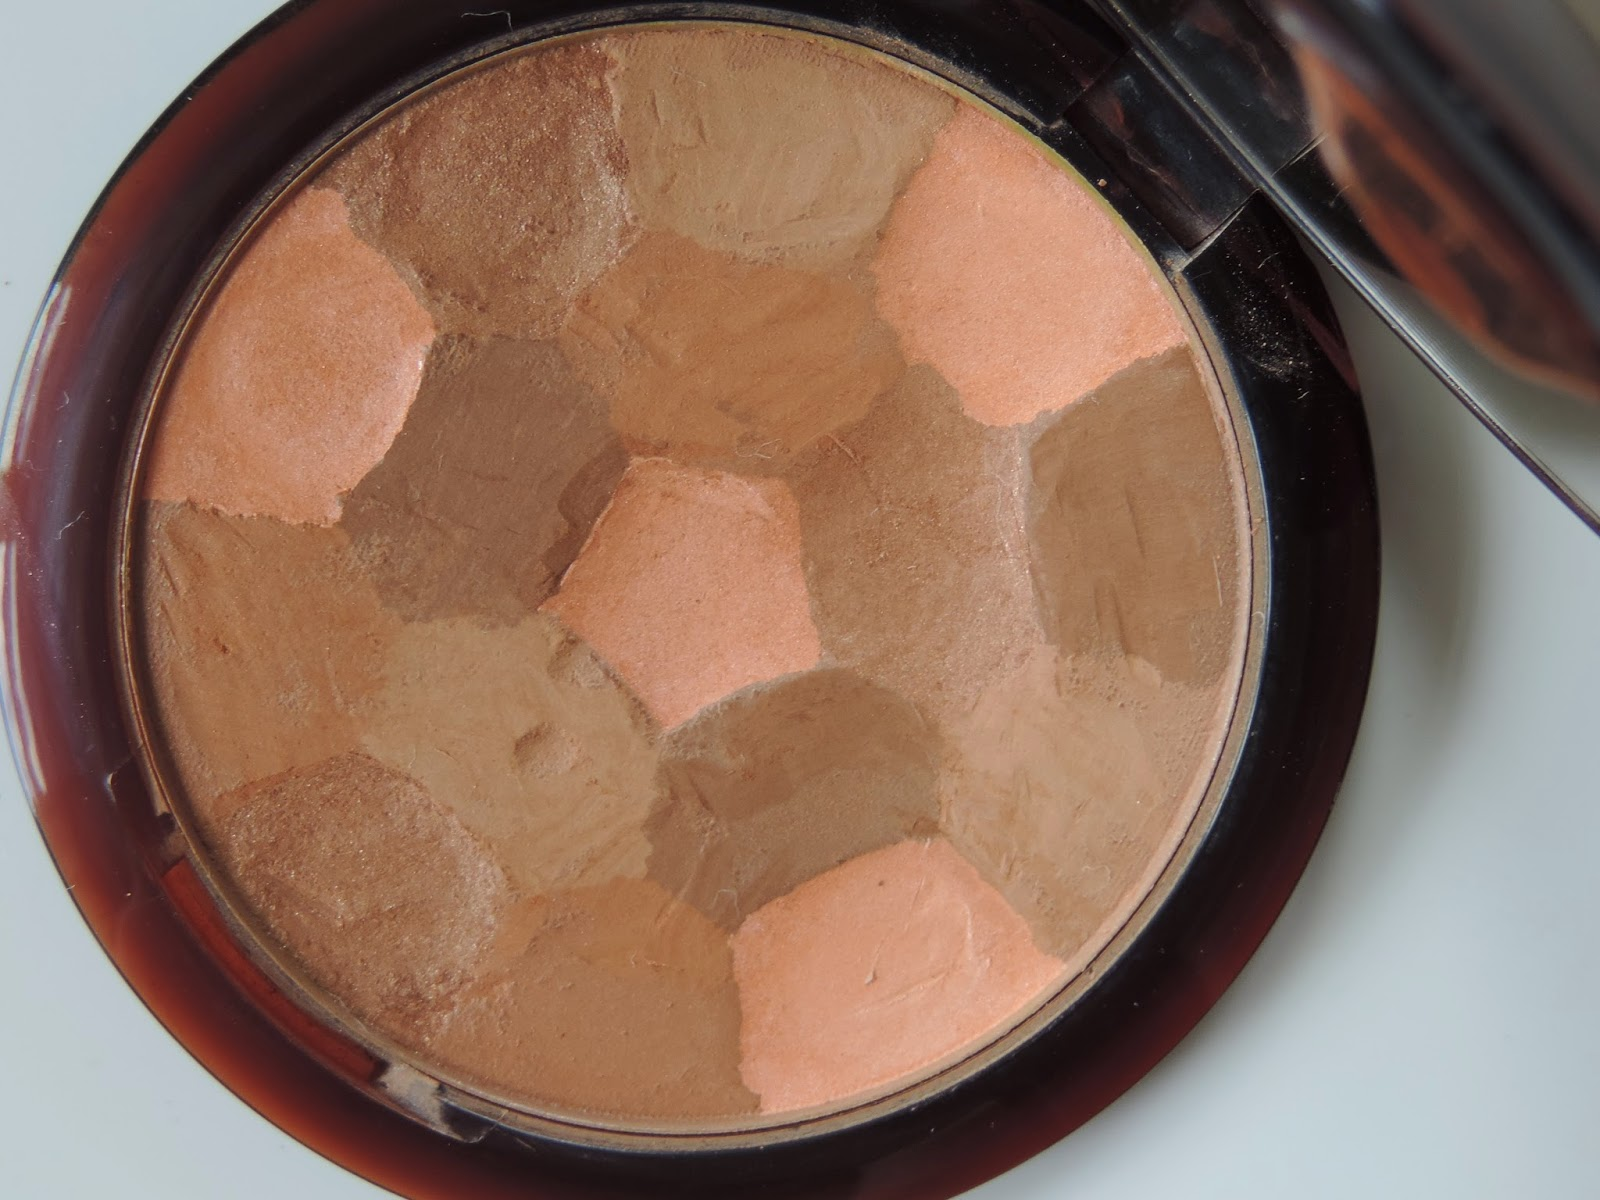 Guerlain Terracotta Light Sheer Bronzing Powder in 03 Brunettes